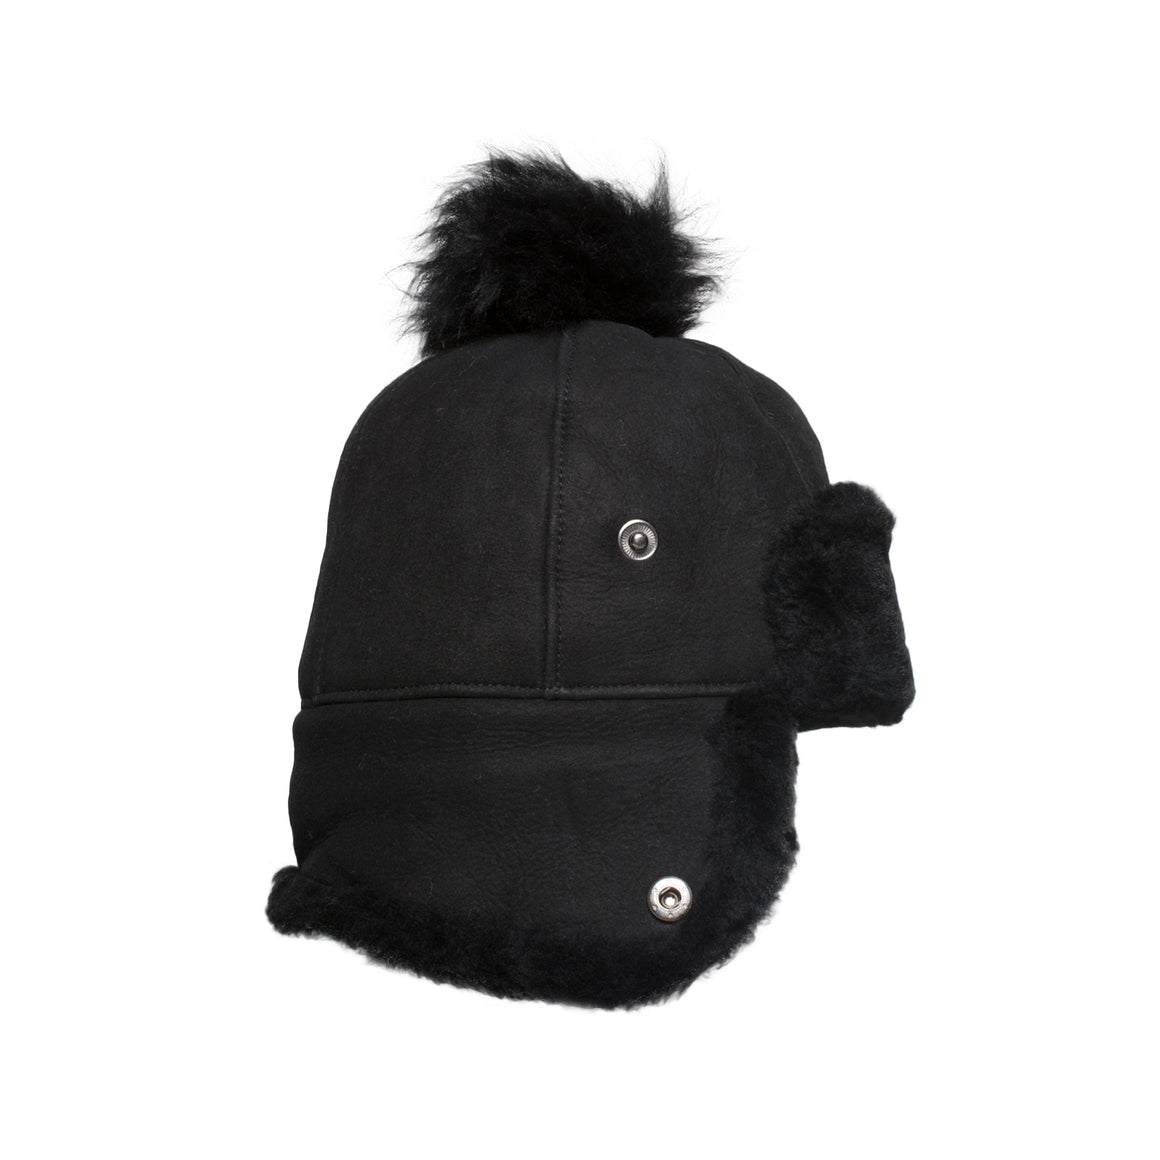 UGG Sheepskin Pom Black Hat - Woman's